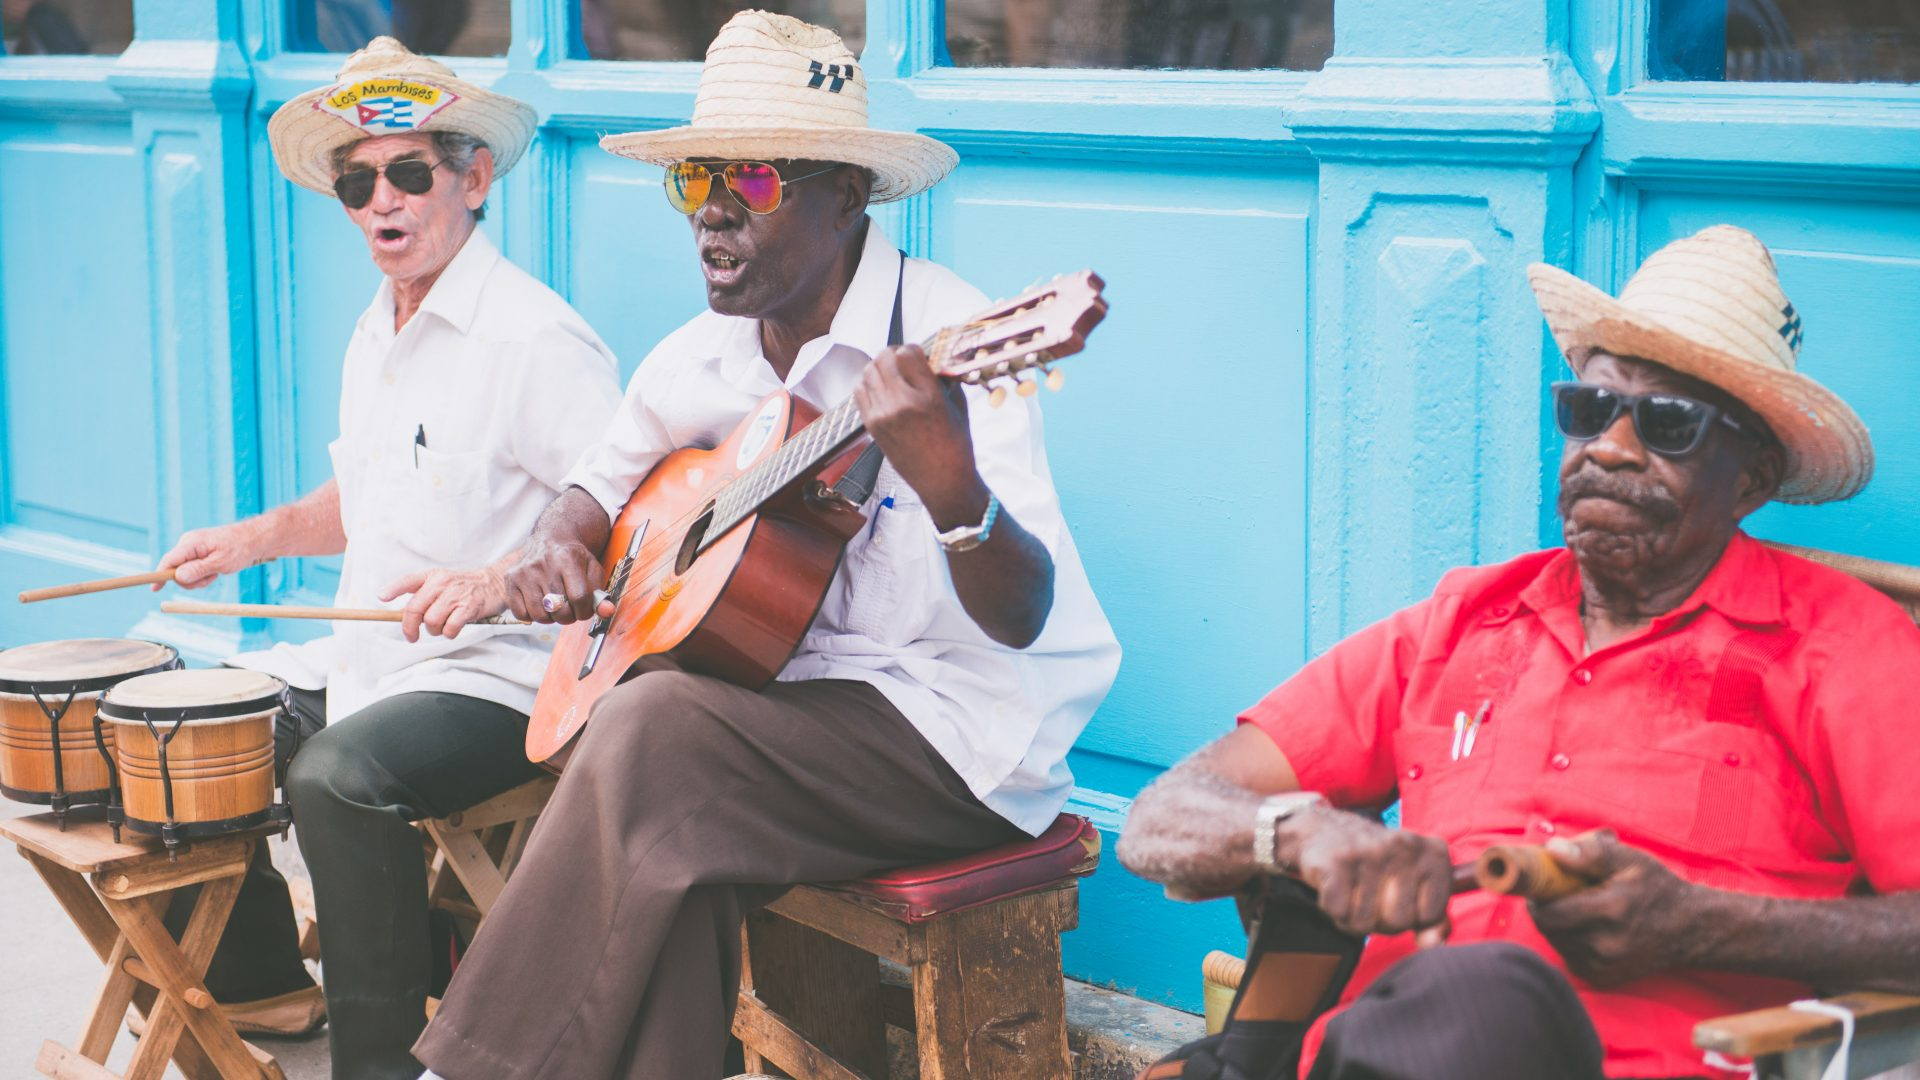 Musicians perform in the old town of Havana, Cuba.